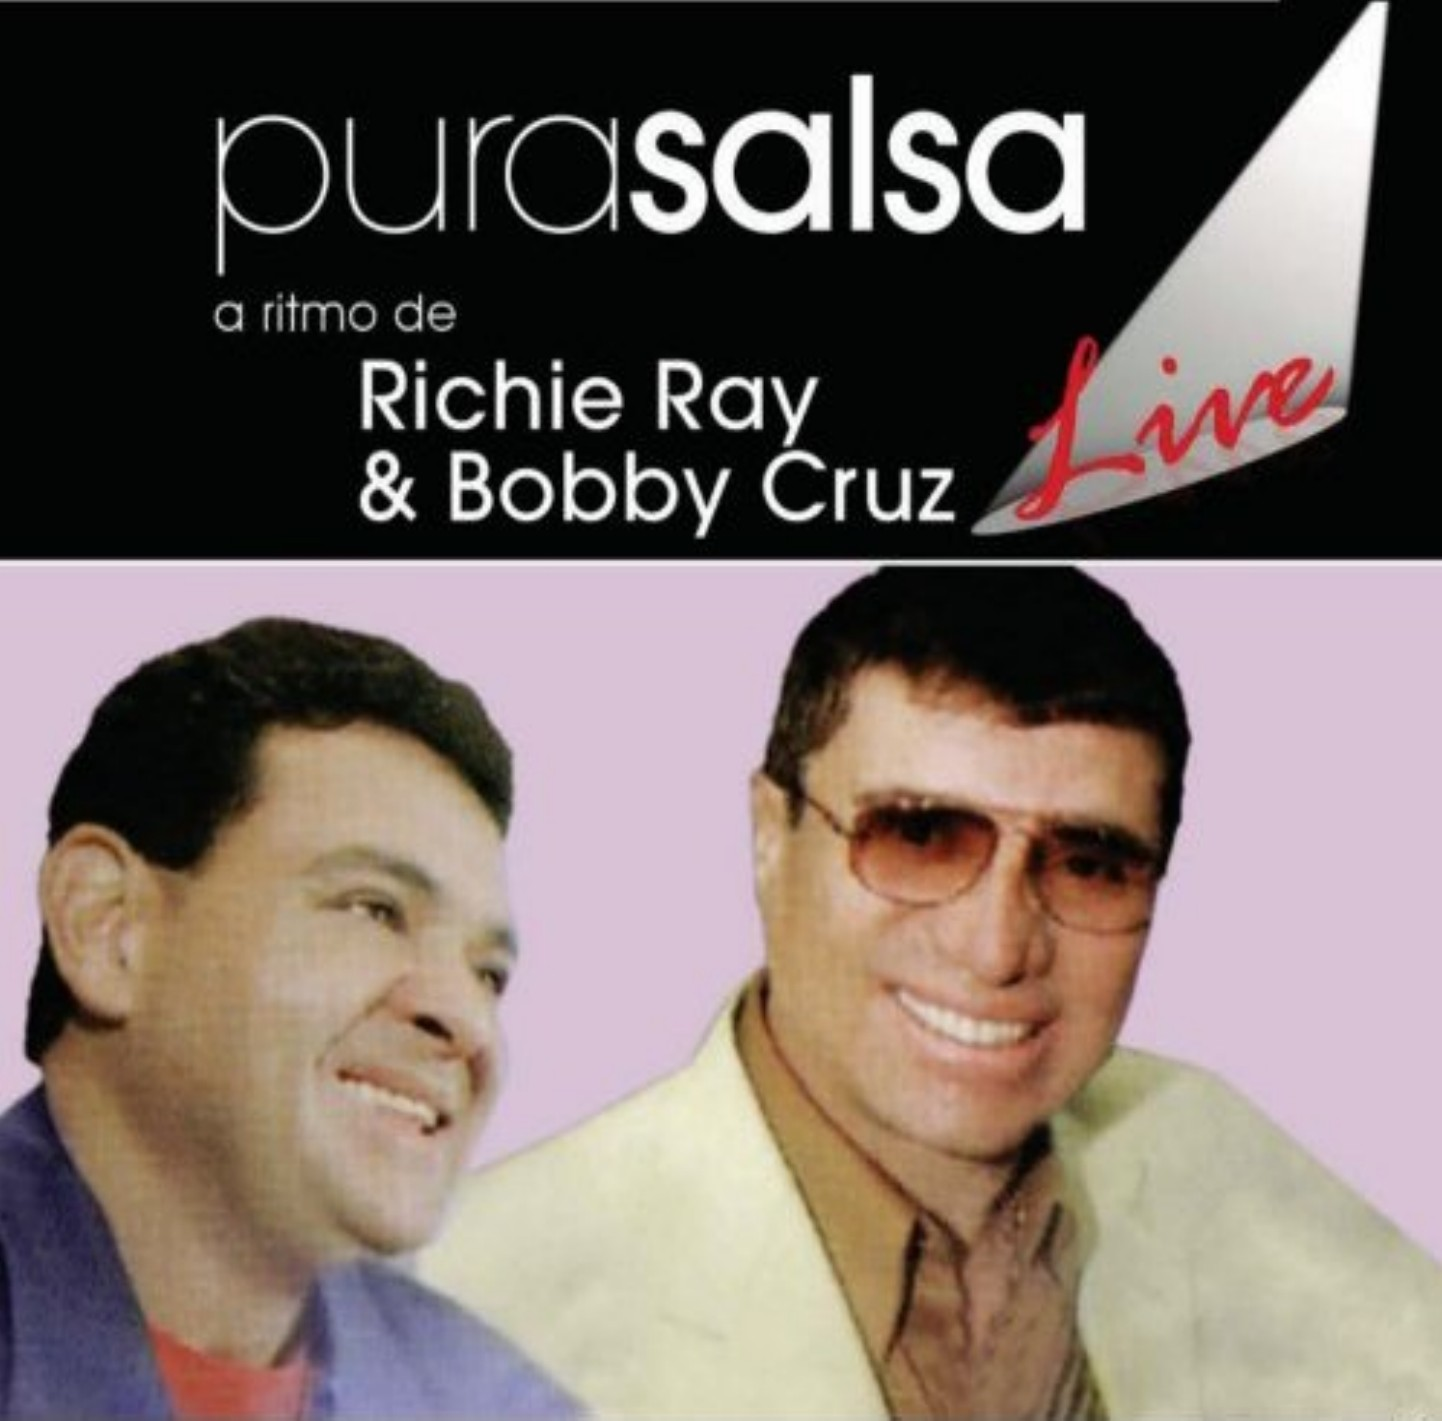 Richie Ray | No cojas lucha... | Página 2